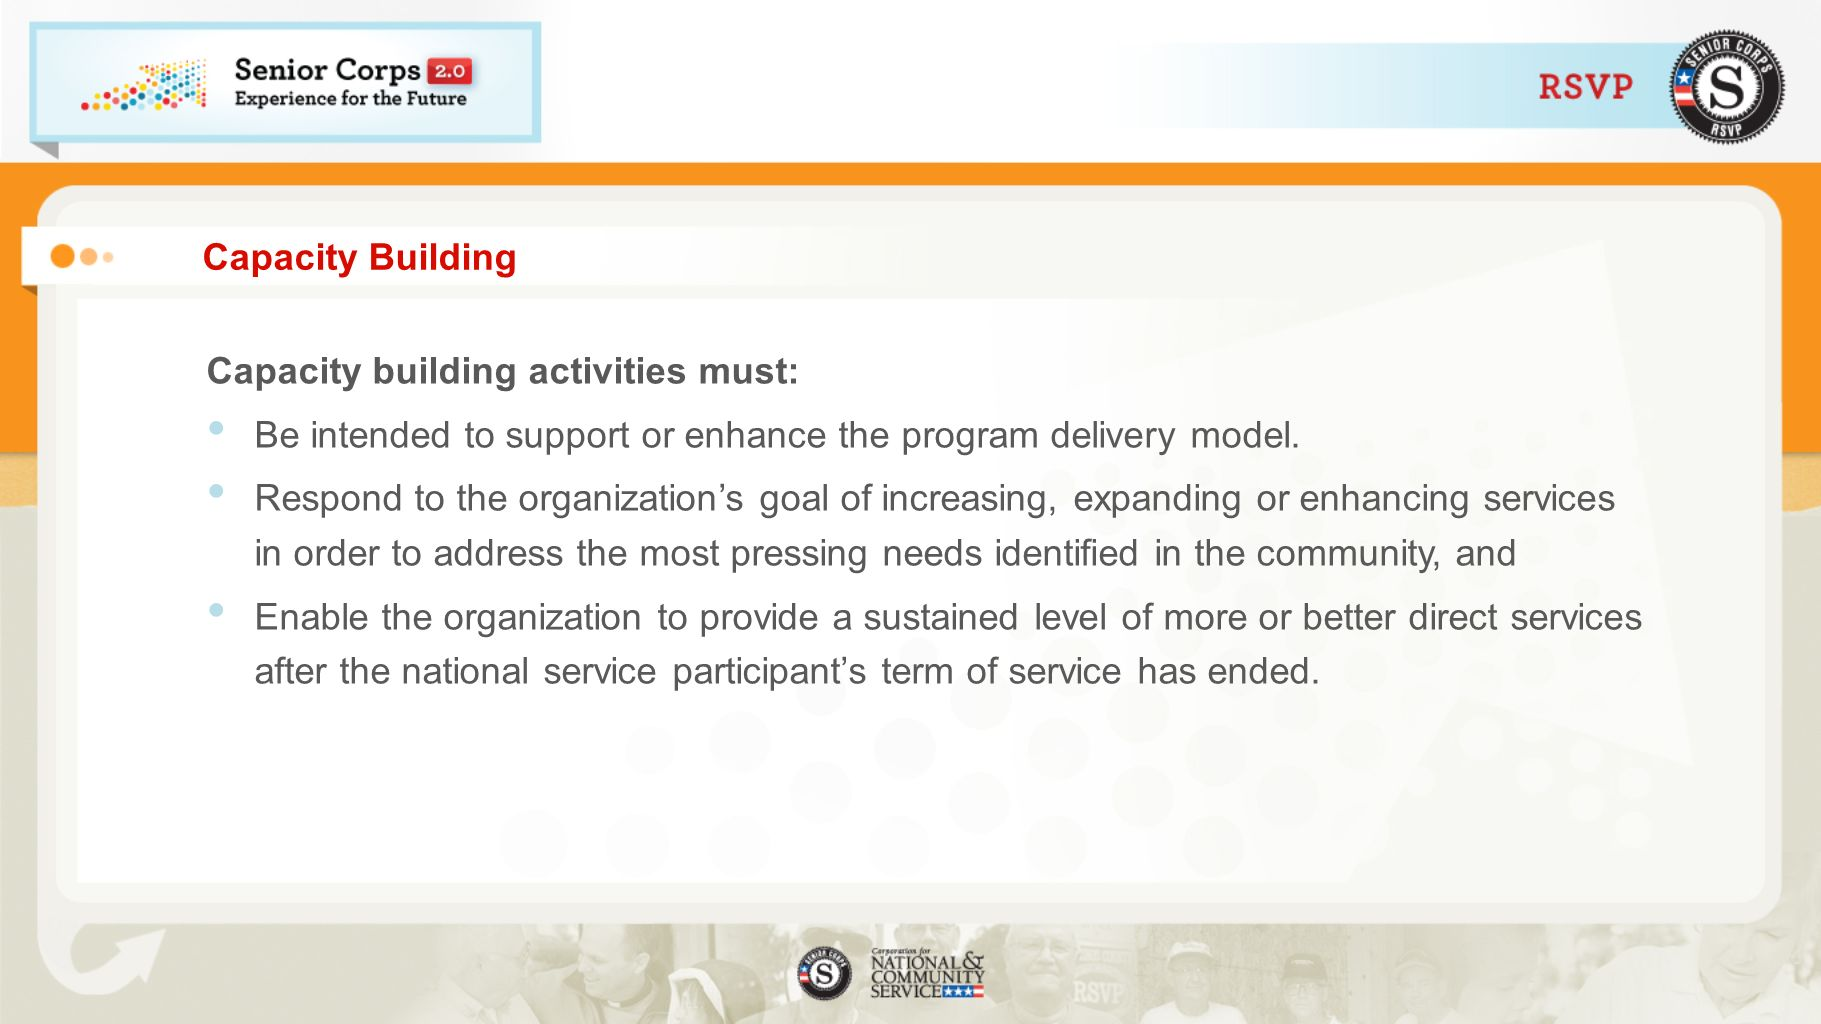 Capacity building activities must: Be intended to support or enhance the program delivery model.